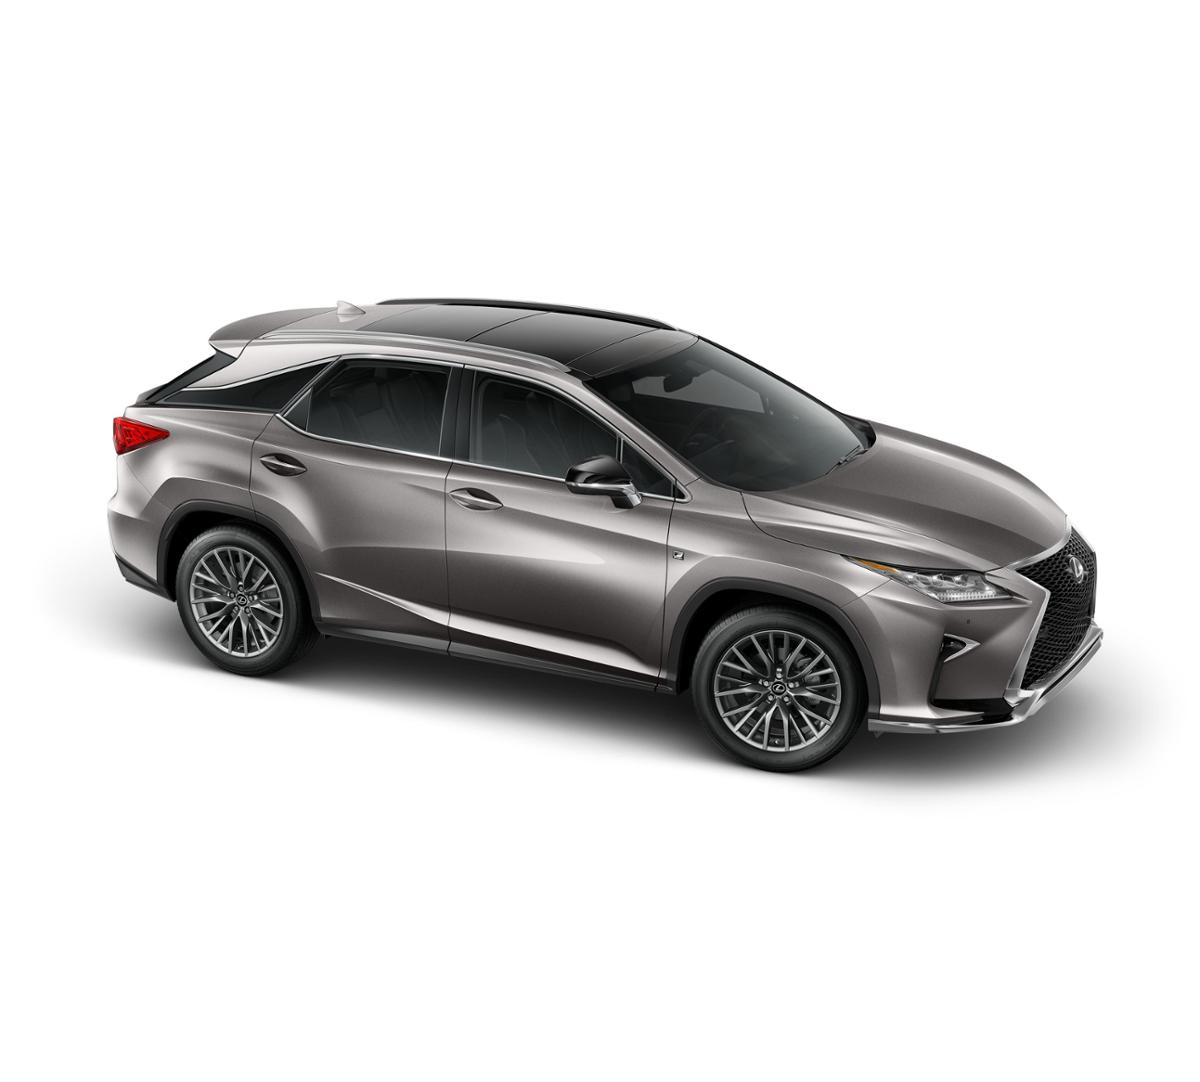 2018 lexus rx 350 f sport in atomic silver for sale in lakeway texas 2t2bzmca6jc137974 in lakeway. Black Bedroom Furniture Sets. Home Design Ideas